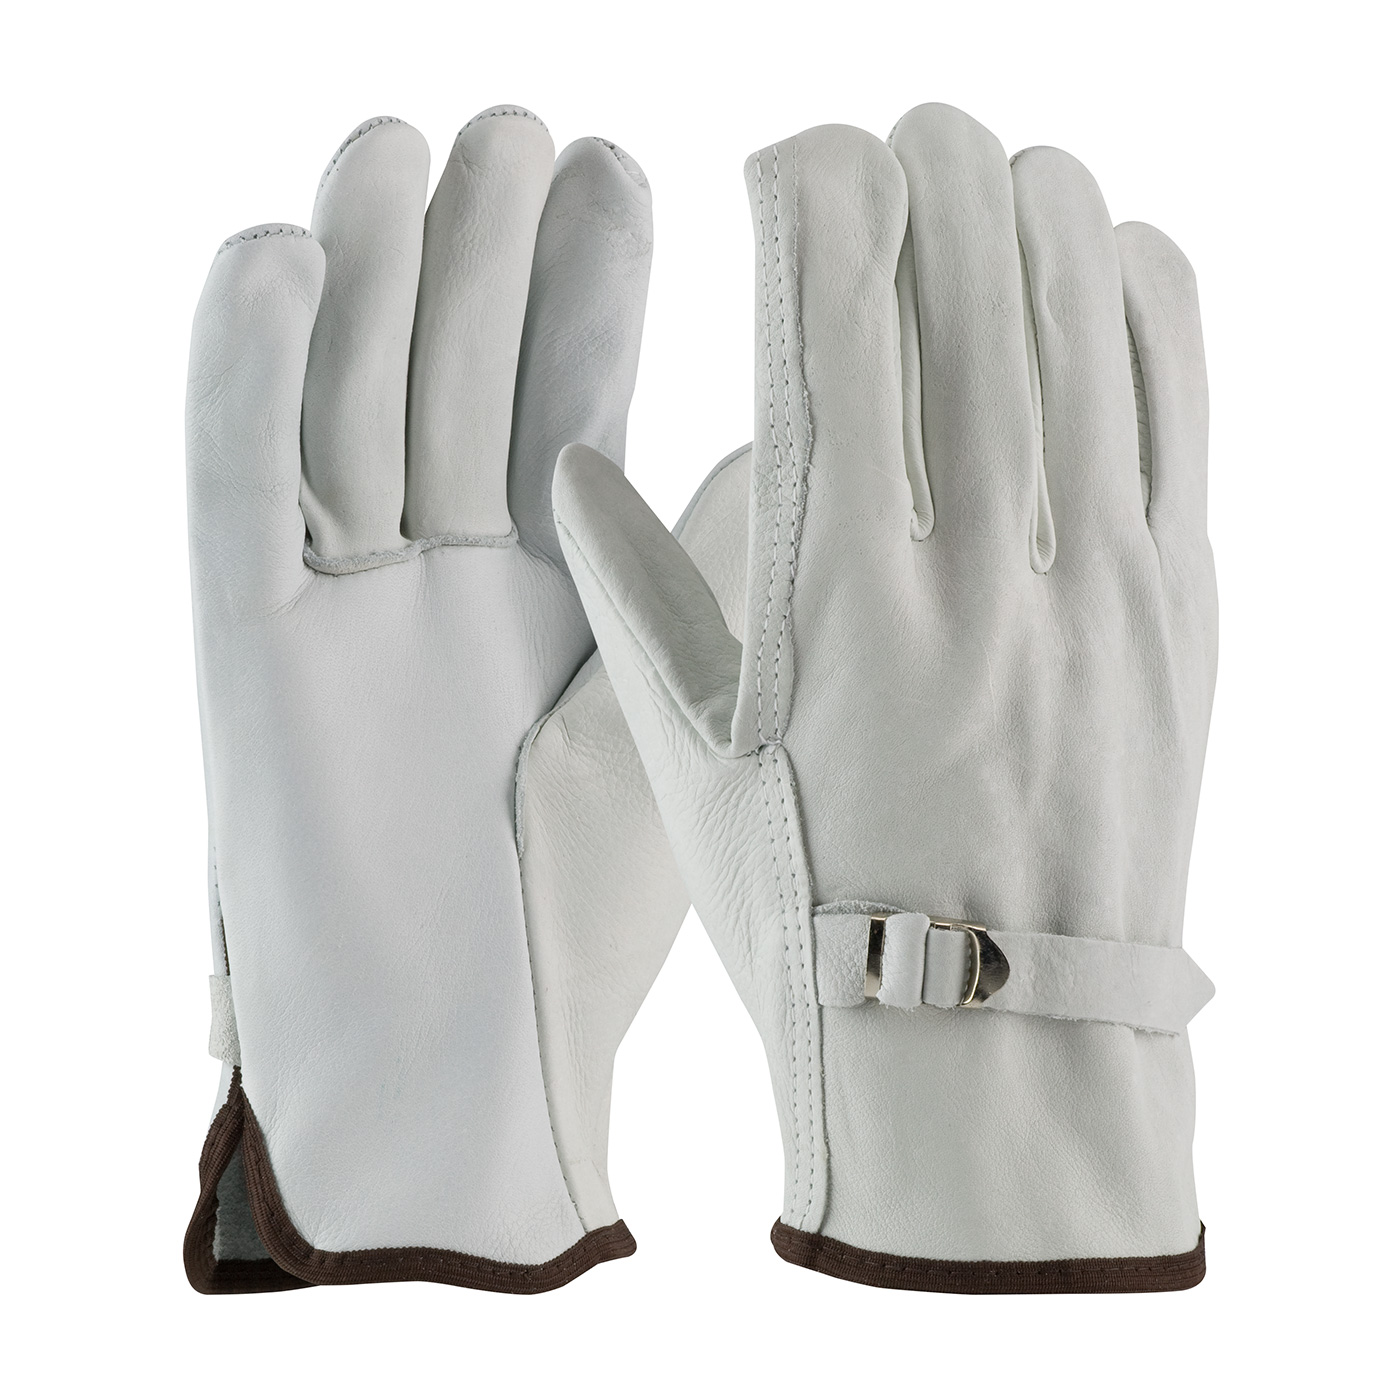 PIP® Superior Grade Top Grain Cowhide Leather Drivers Glove with Pull Strap Closure - Straight Thumb #68-158